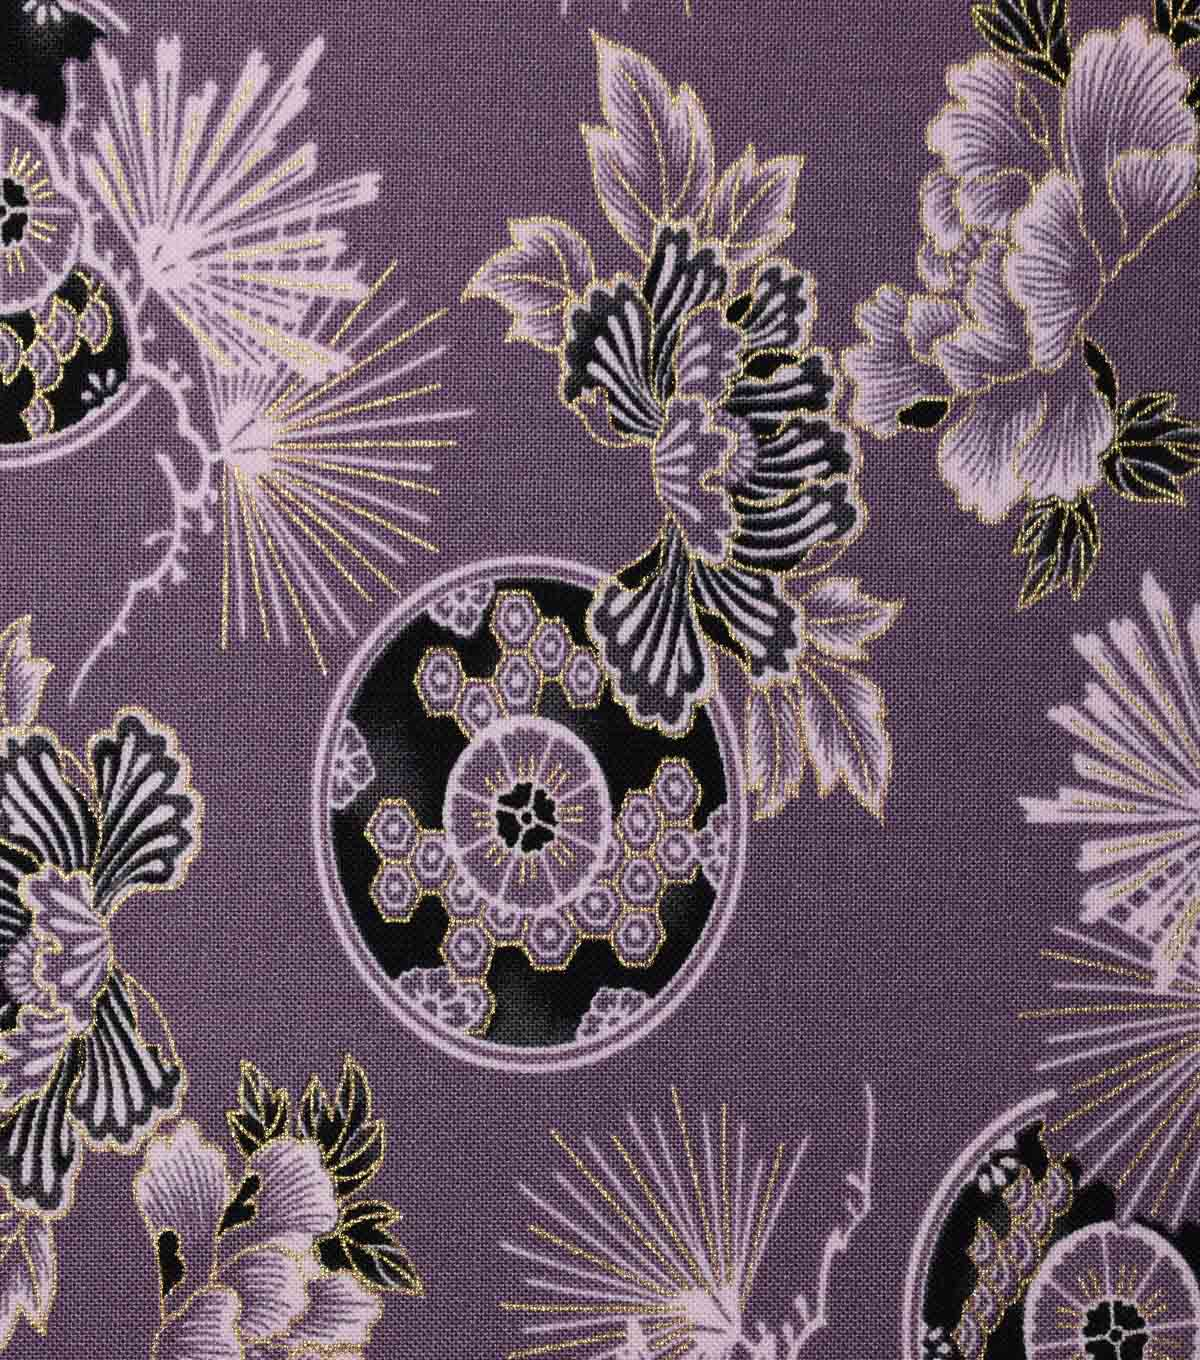 Premium Cotton Print Fabric -Purple & Metallic Floral Fans